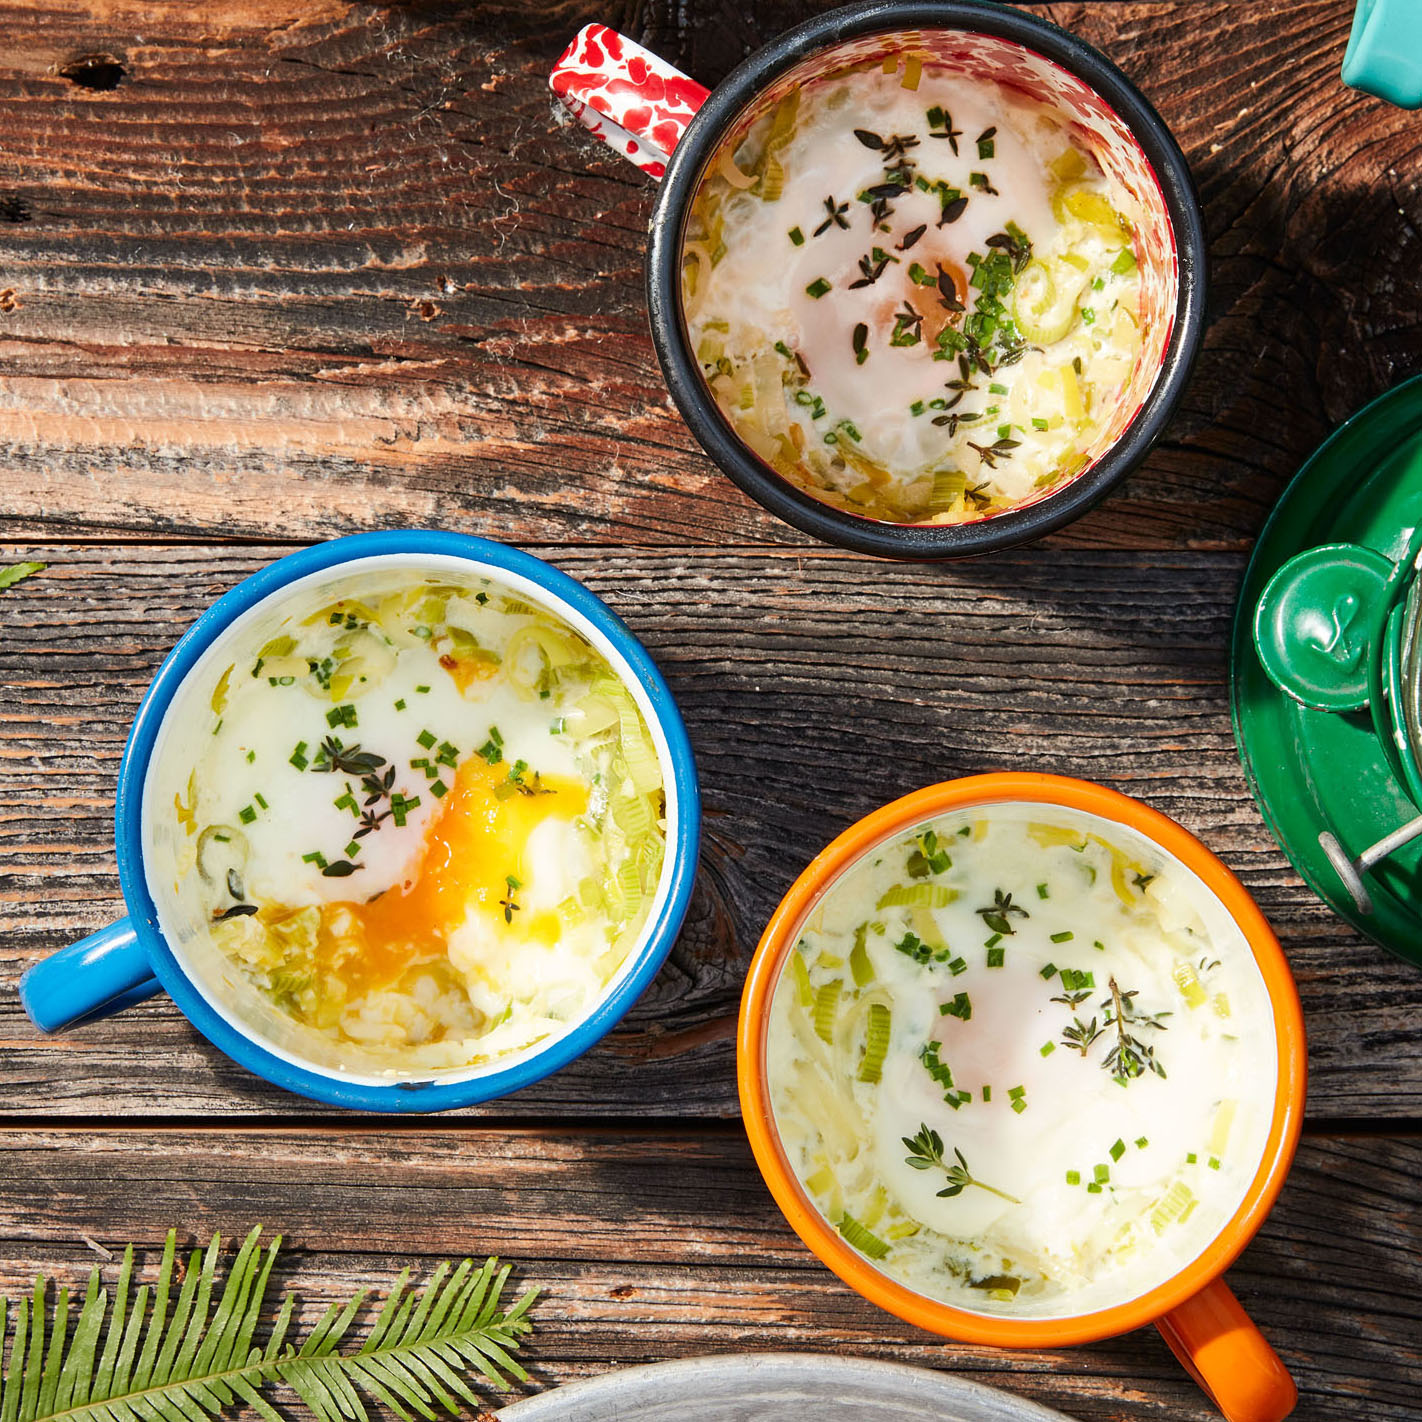 Campfire Eggs with Leeks & Herbs